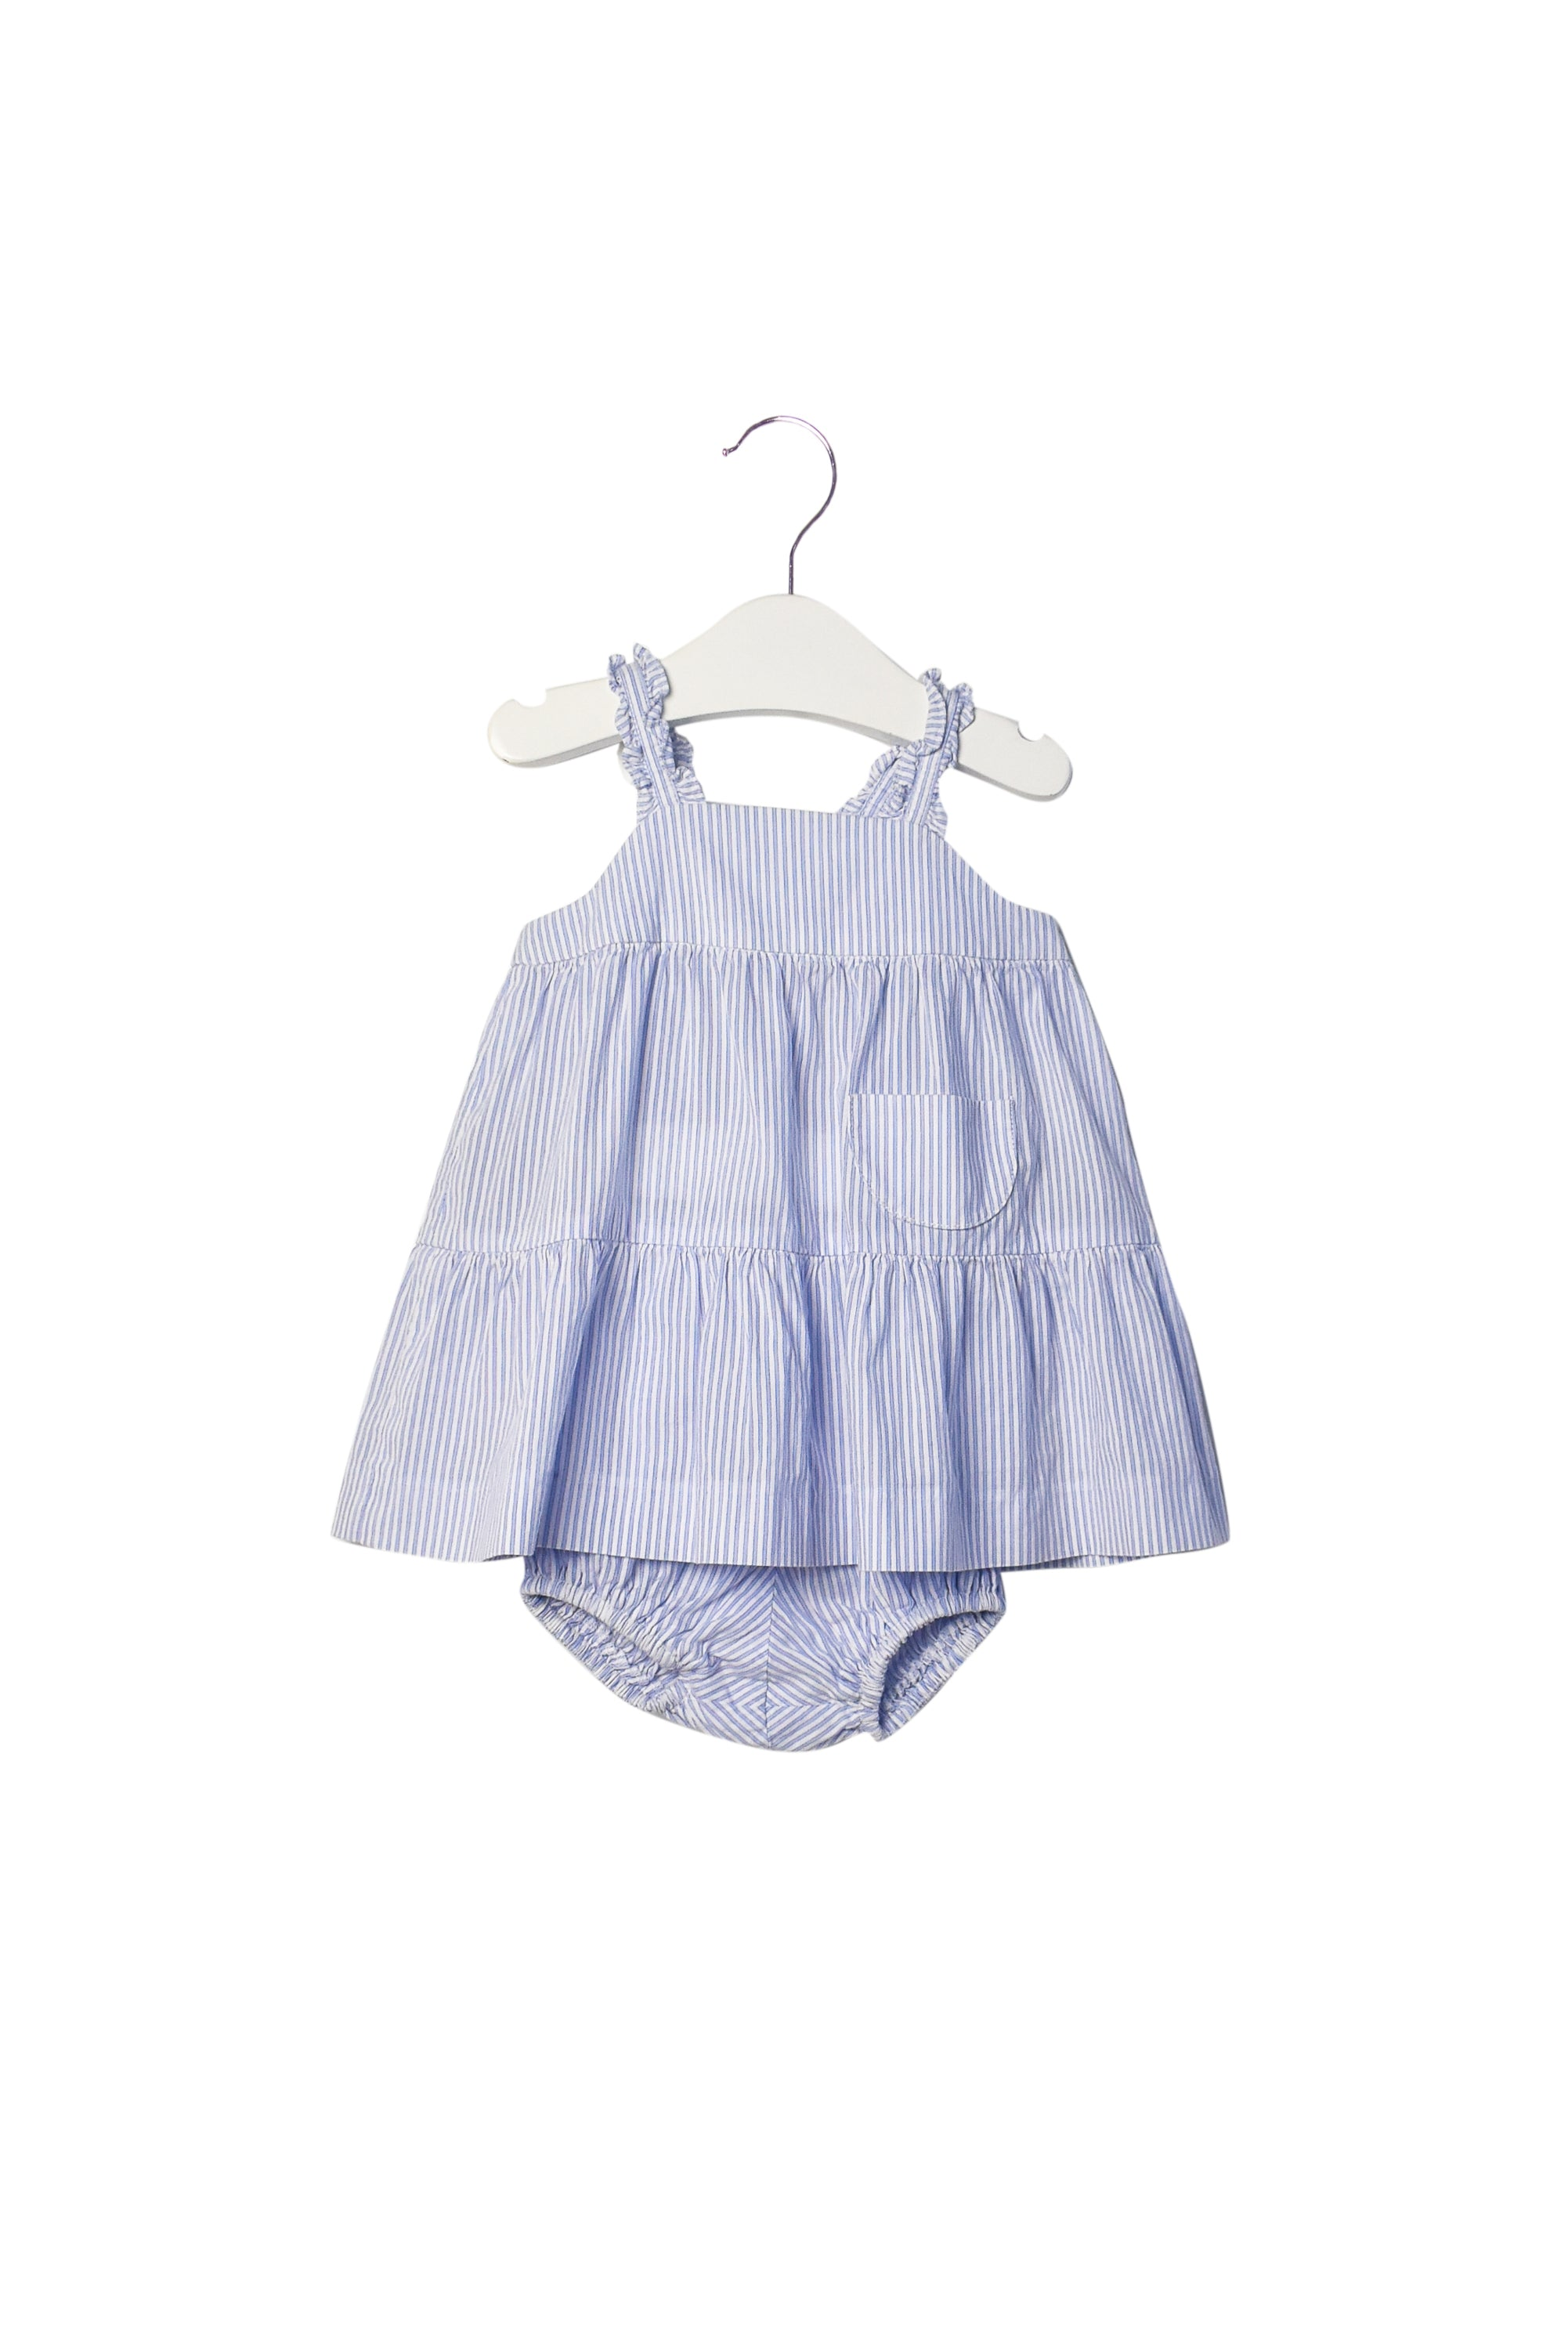 10006794 Poeme Baby~Dress and Bloomer 3M at Retykle